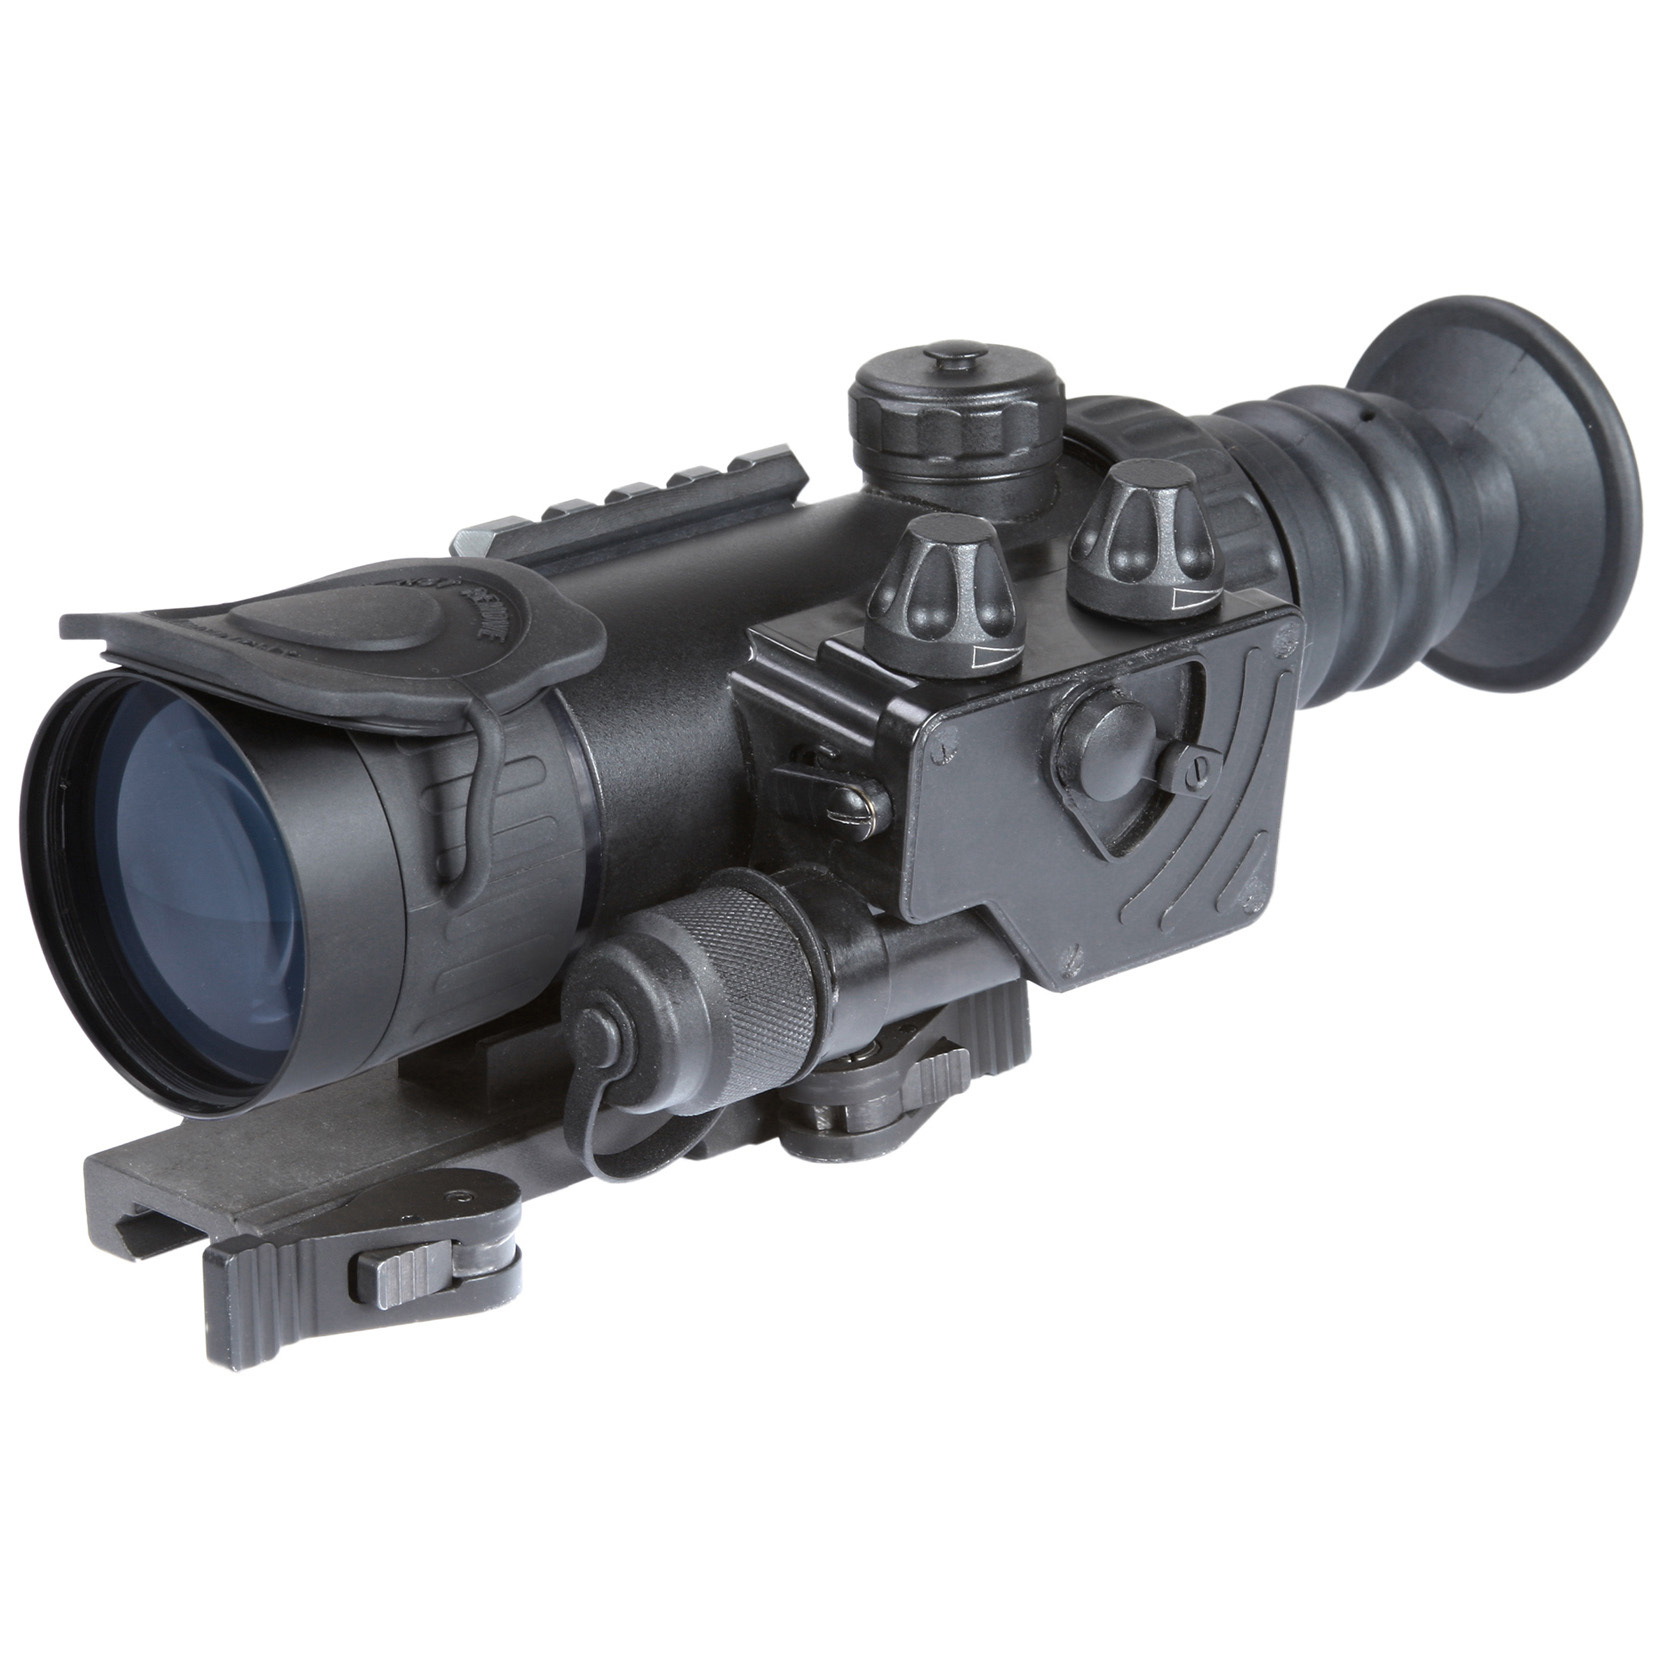 "Armasight Vulcan 2.5-5X Gen 2+ HD Night Vision Rifle Scope. Small in size but huge in performance, this Vulcan 2.5-5X Gen 2+ HD delivers stunning imaging with multiple IIT configurations. It weighs just 27 ozs., but still packs in the good stuff, like multi-coated all-glass lenses and an illuminated reticle with brightness adjustment hat makes precise shot placement incredibly easy.Mount it to your rifle's Weaver or Picatinny rail in seconds. No tools. No time wasted. Then let the Vulcan do its thing, pulling your target out of the shadows with a Gen 2+ HD image tube and serving it up in stunning high-definition clarity.Features:Wide array of IIT configurations 2.5-5X magnification with included magnifier Shockproof all-glass IR transmission multi-coated optics Bright light cut off Illuminated reticle with brightness adjustment Variable gain control Includes wireless remote control WATERPROOF design Detachable long-range infrared illuminator Low battery indicator Quick-release mount Mounts to standard Weaver rails Runs on 1 CR123A battery (included) or AA battery Includes lens cap, carrying case, battery adapter, and lens tissue Measures 3.8 x 2.8 x 9.4""l. Weighs 1.7 lbs. Specifications:IIT generation: Gen 2+ HD Resolution: 55-72 lp / mm Exit pupil diameter: 7mm Eye relief: 45mm Windage and elevation adjustment: 1/2"" MOA Lens system: F1.35, F60mm 16 degrees F.O.V. Diopter adjustment: -4 to +4 Controls: direct Automatic shutoff system Battery life: 50 hours (CR123A) / 46 hours (AA) Operating temperature: -40 degrees to 122 degrees F. Storage temperature: -50 degrees to 158 degrees F. - $3,034.99"